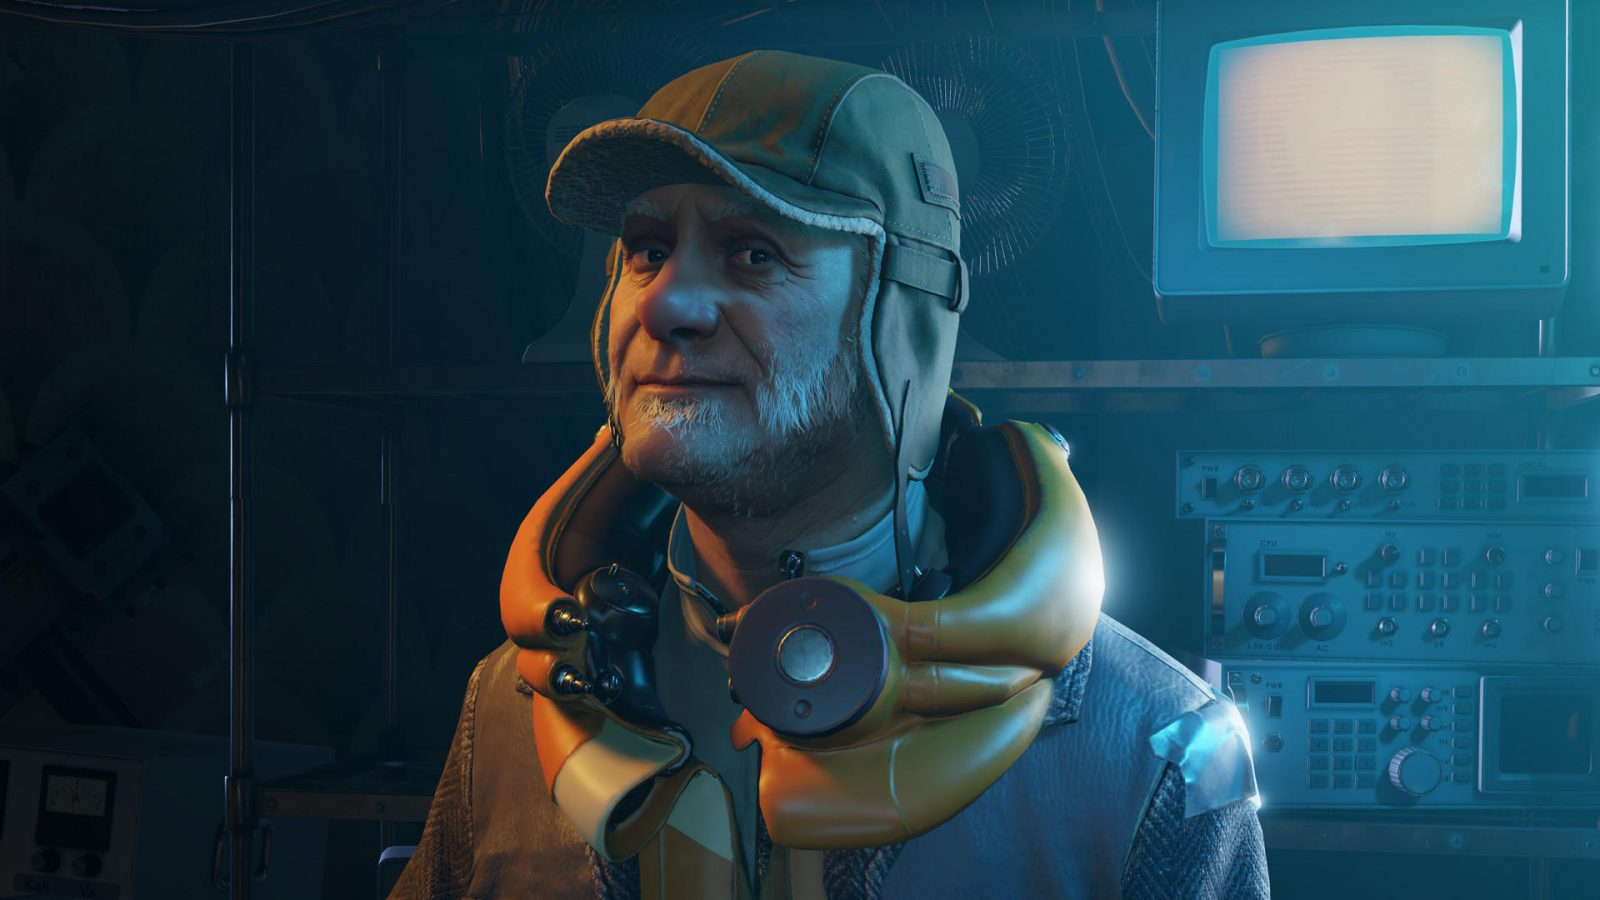 It Sure Seems Like Rhys Darby is One of the New Voice Actors in Half-Life: Alyx